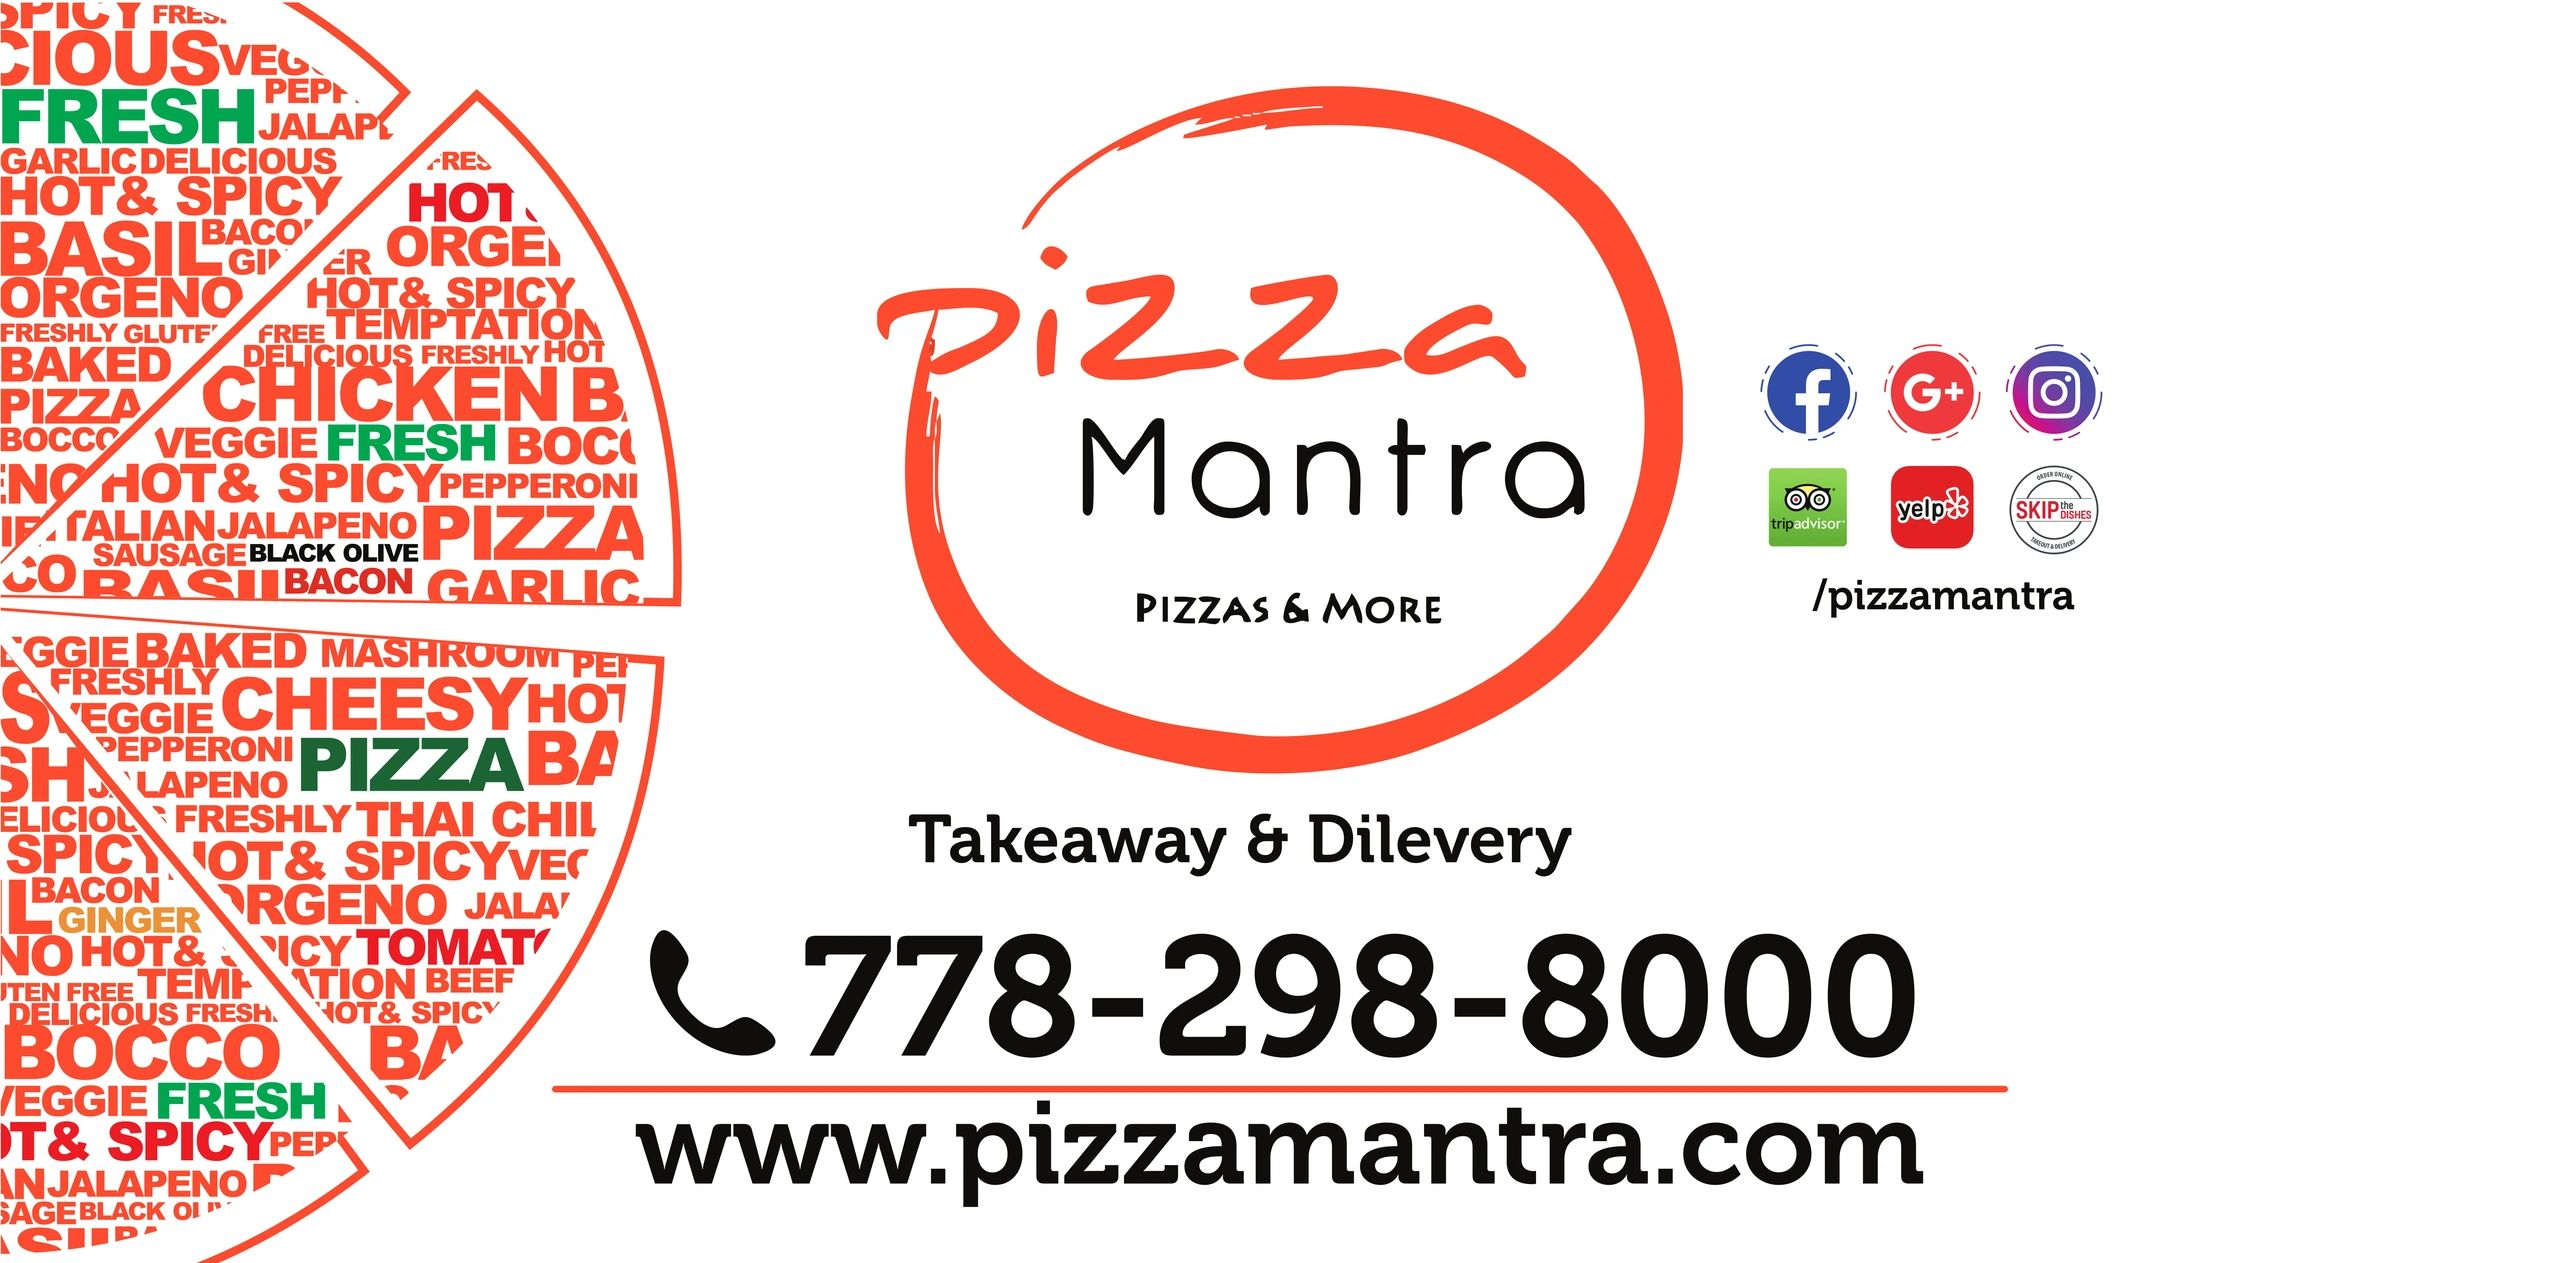 Pizza Mantra serving pizza in Langley